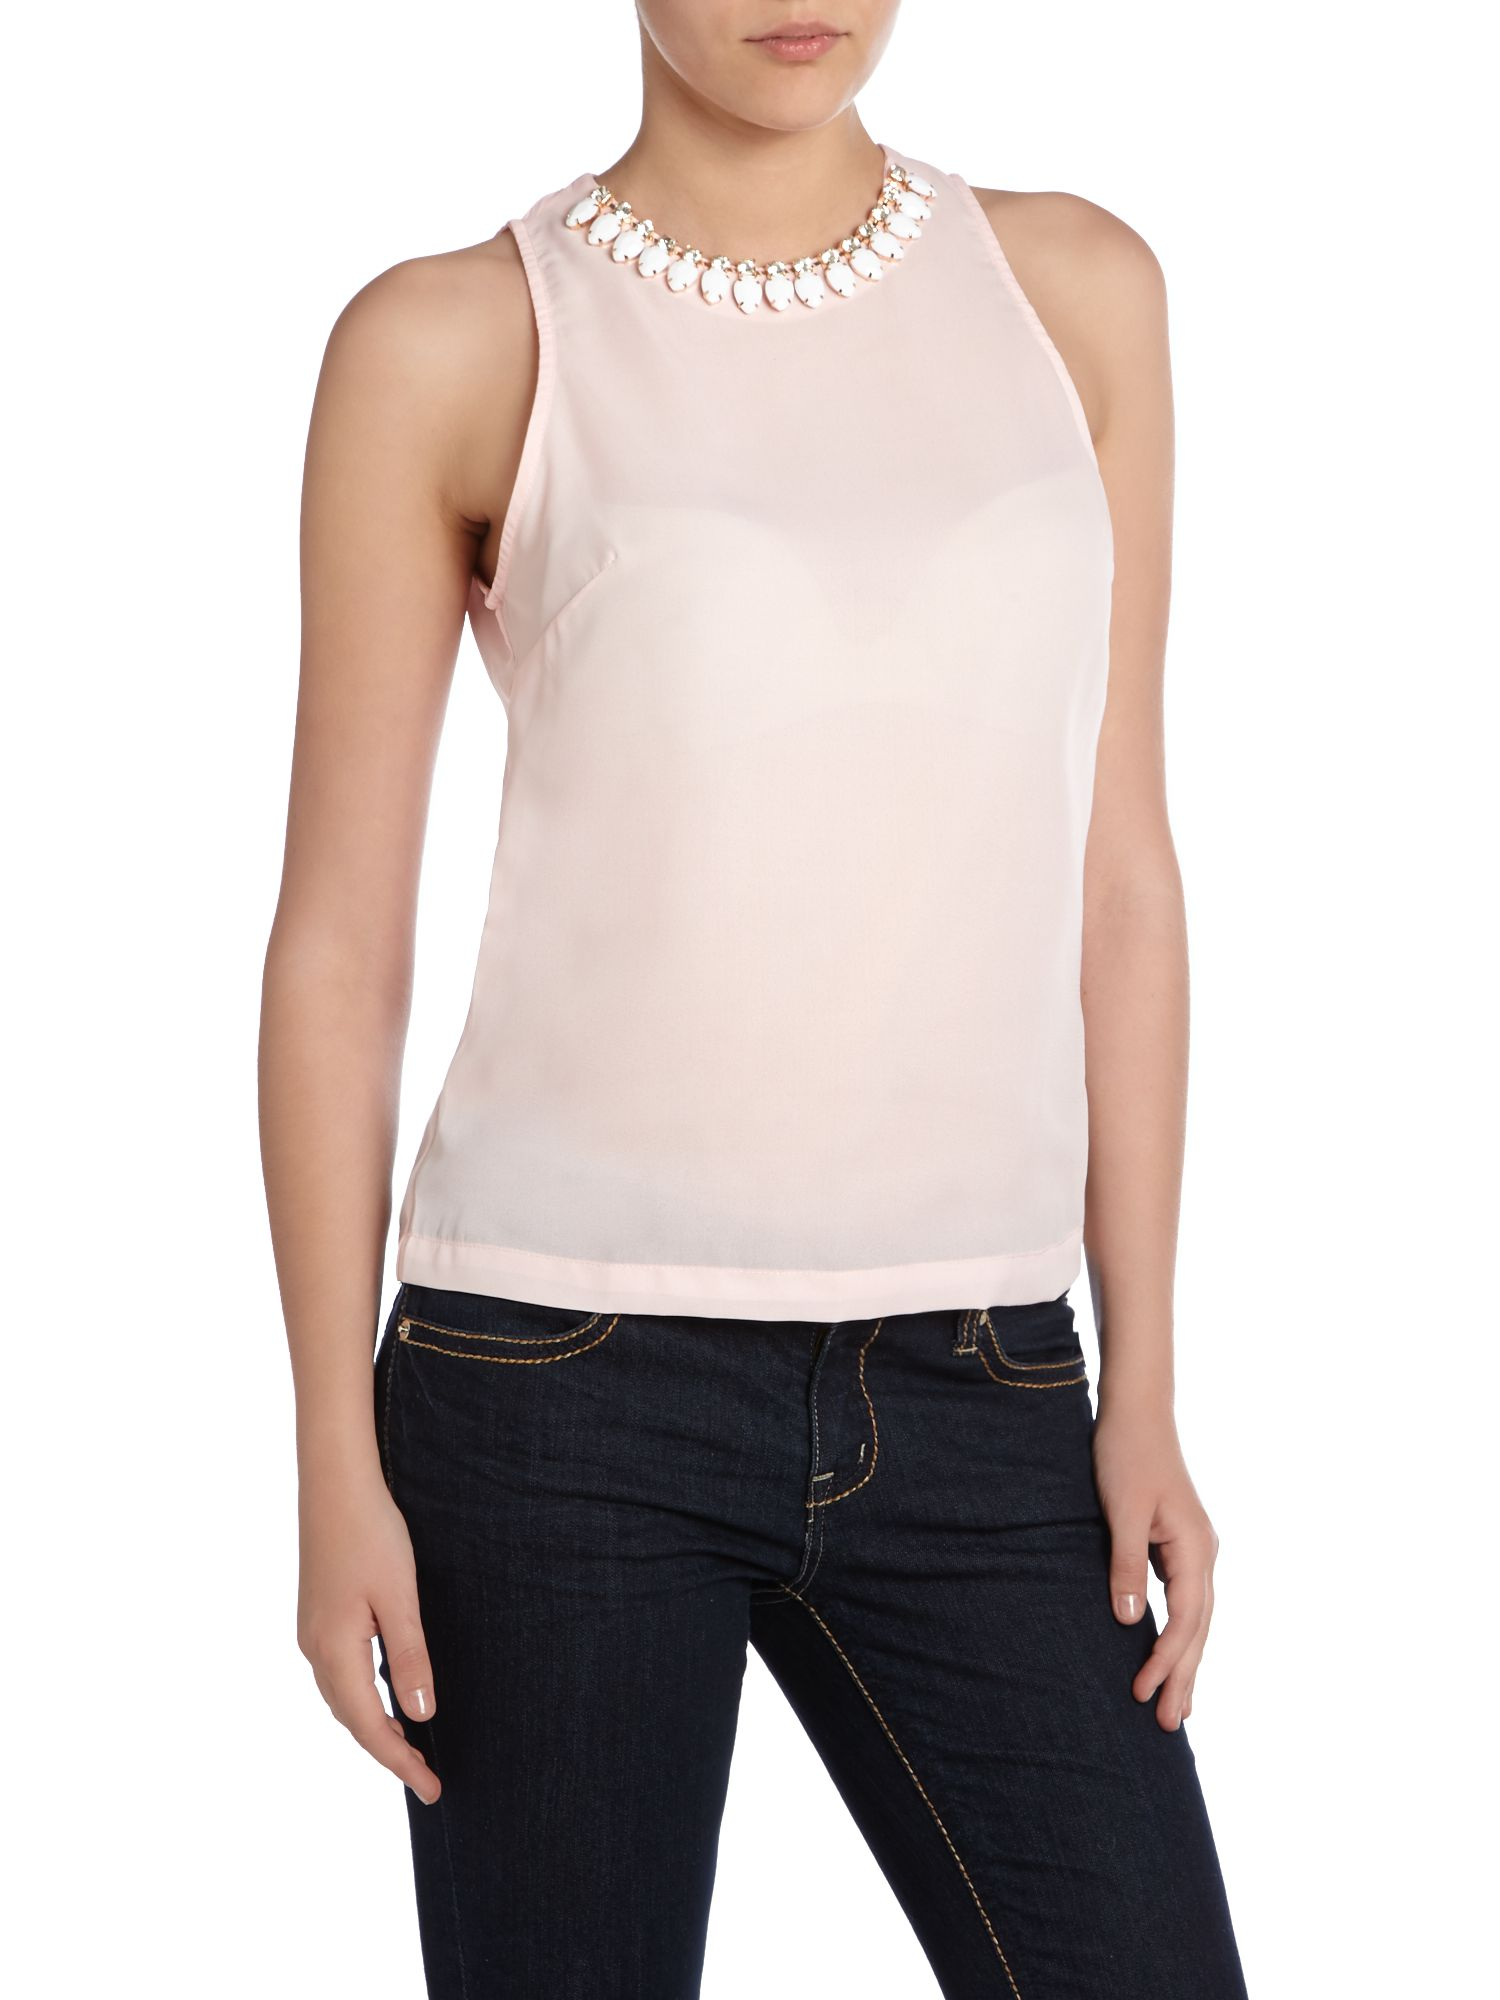 Sleeveless top with gem collar